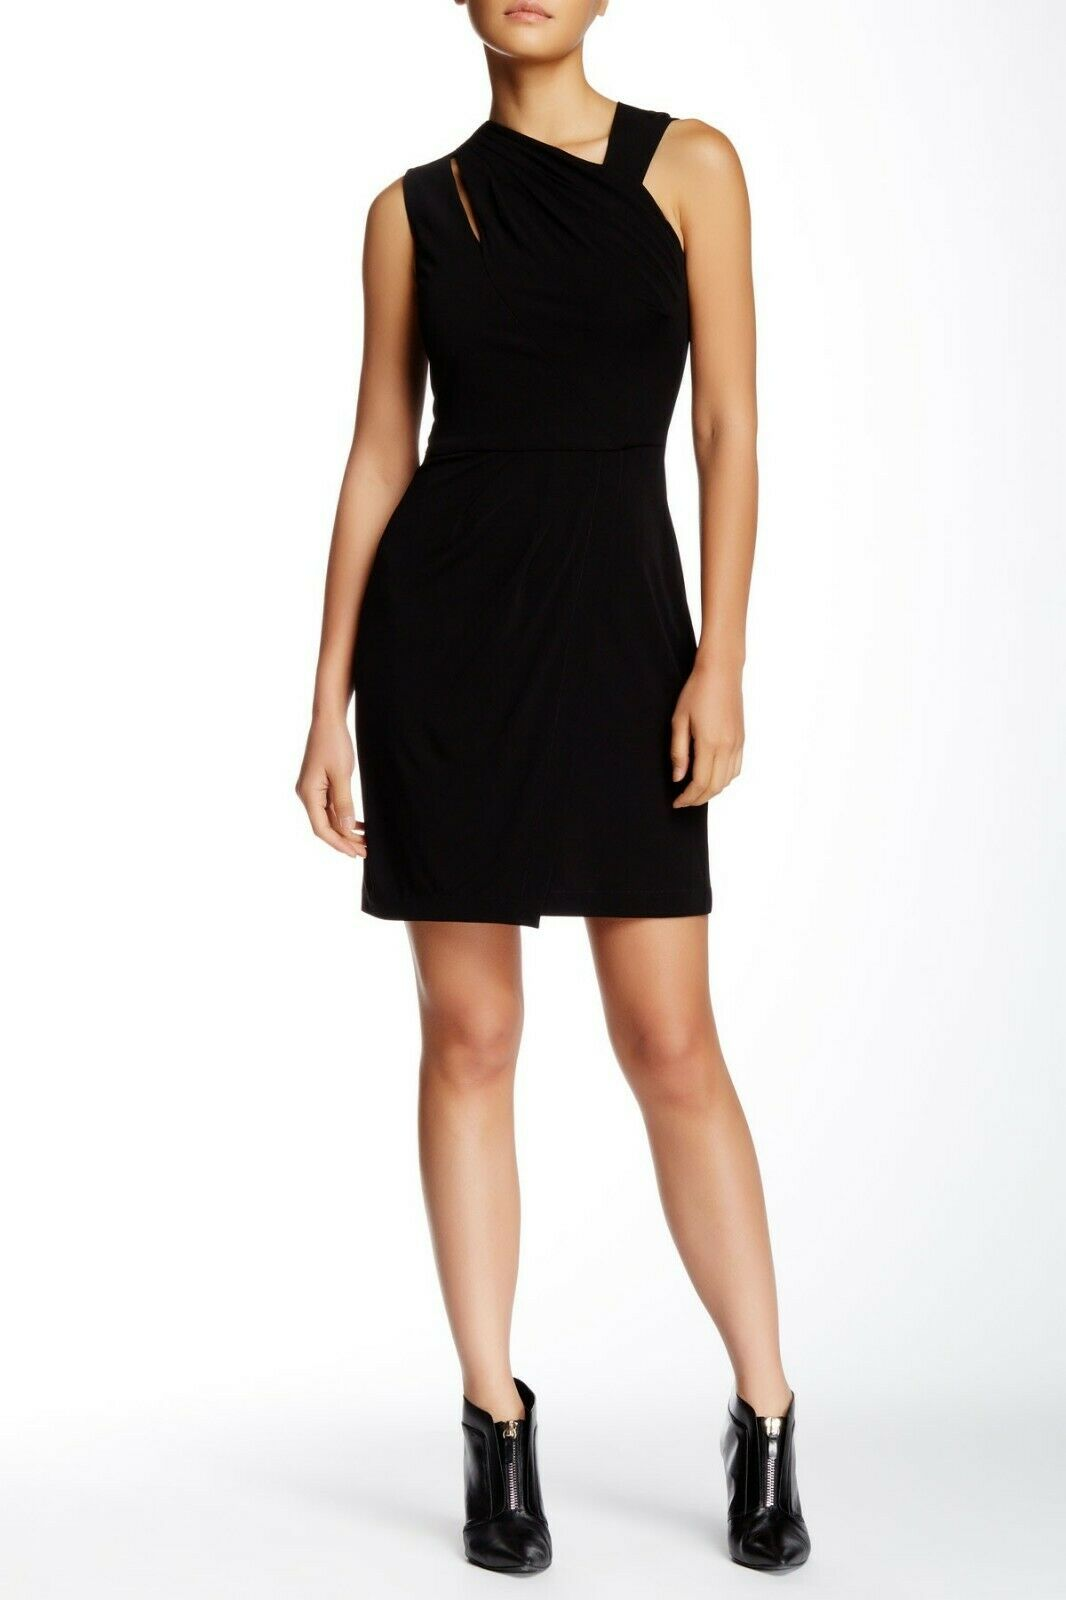 395 Cut25 by Yigal Azrouel Matte Jersey Dress Ruched Assymetrical LBD 12 L